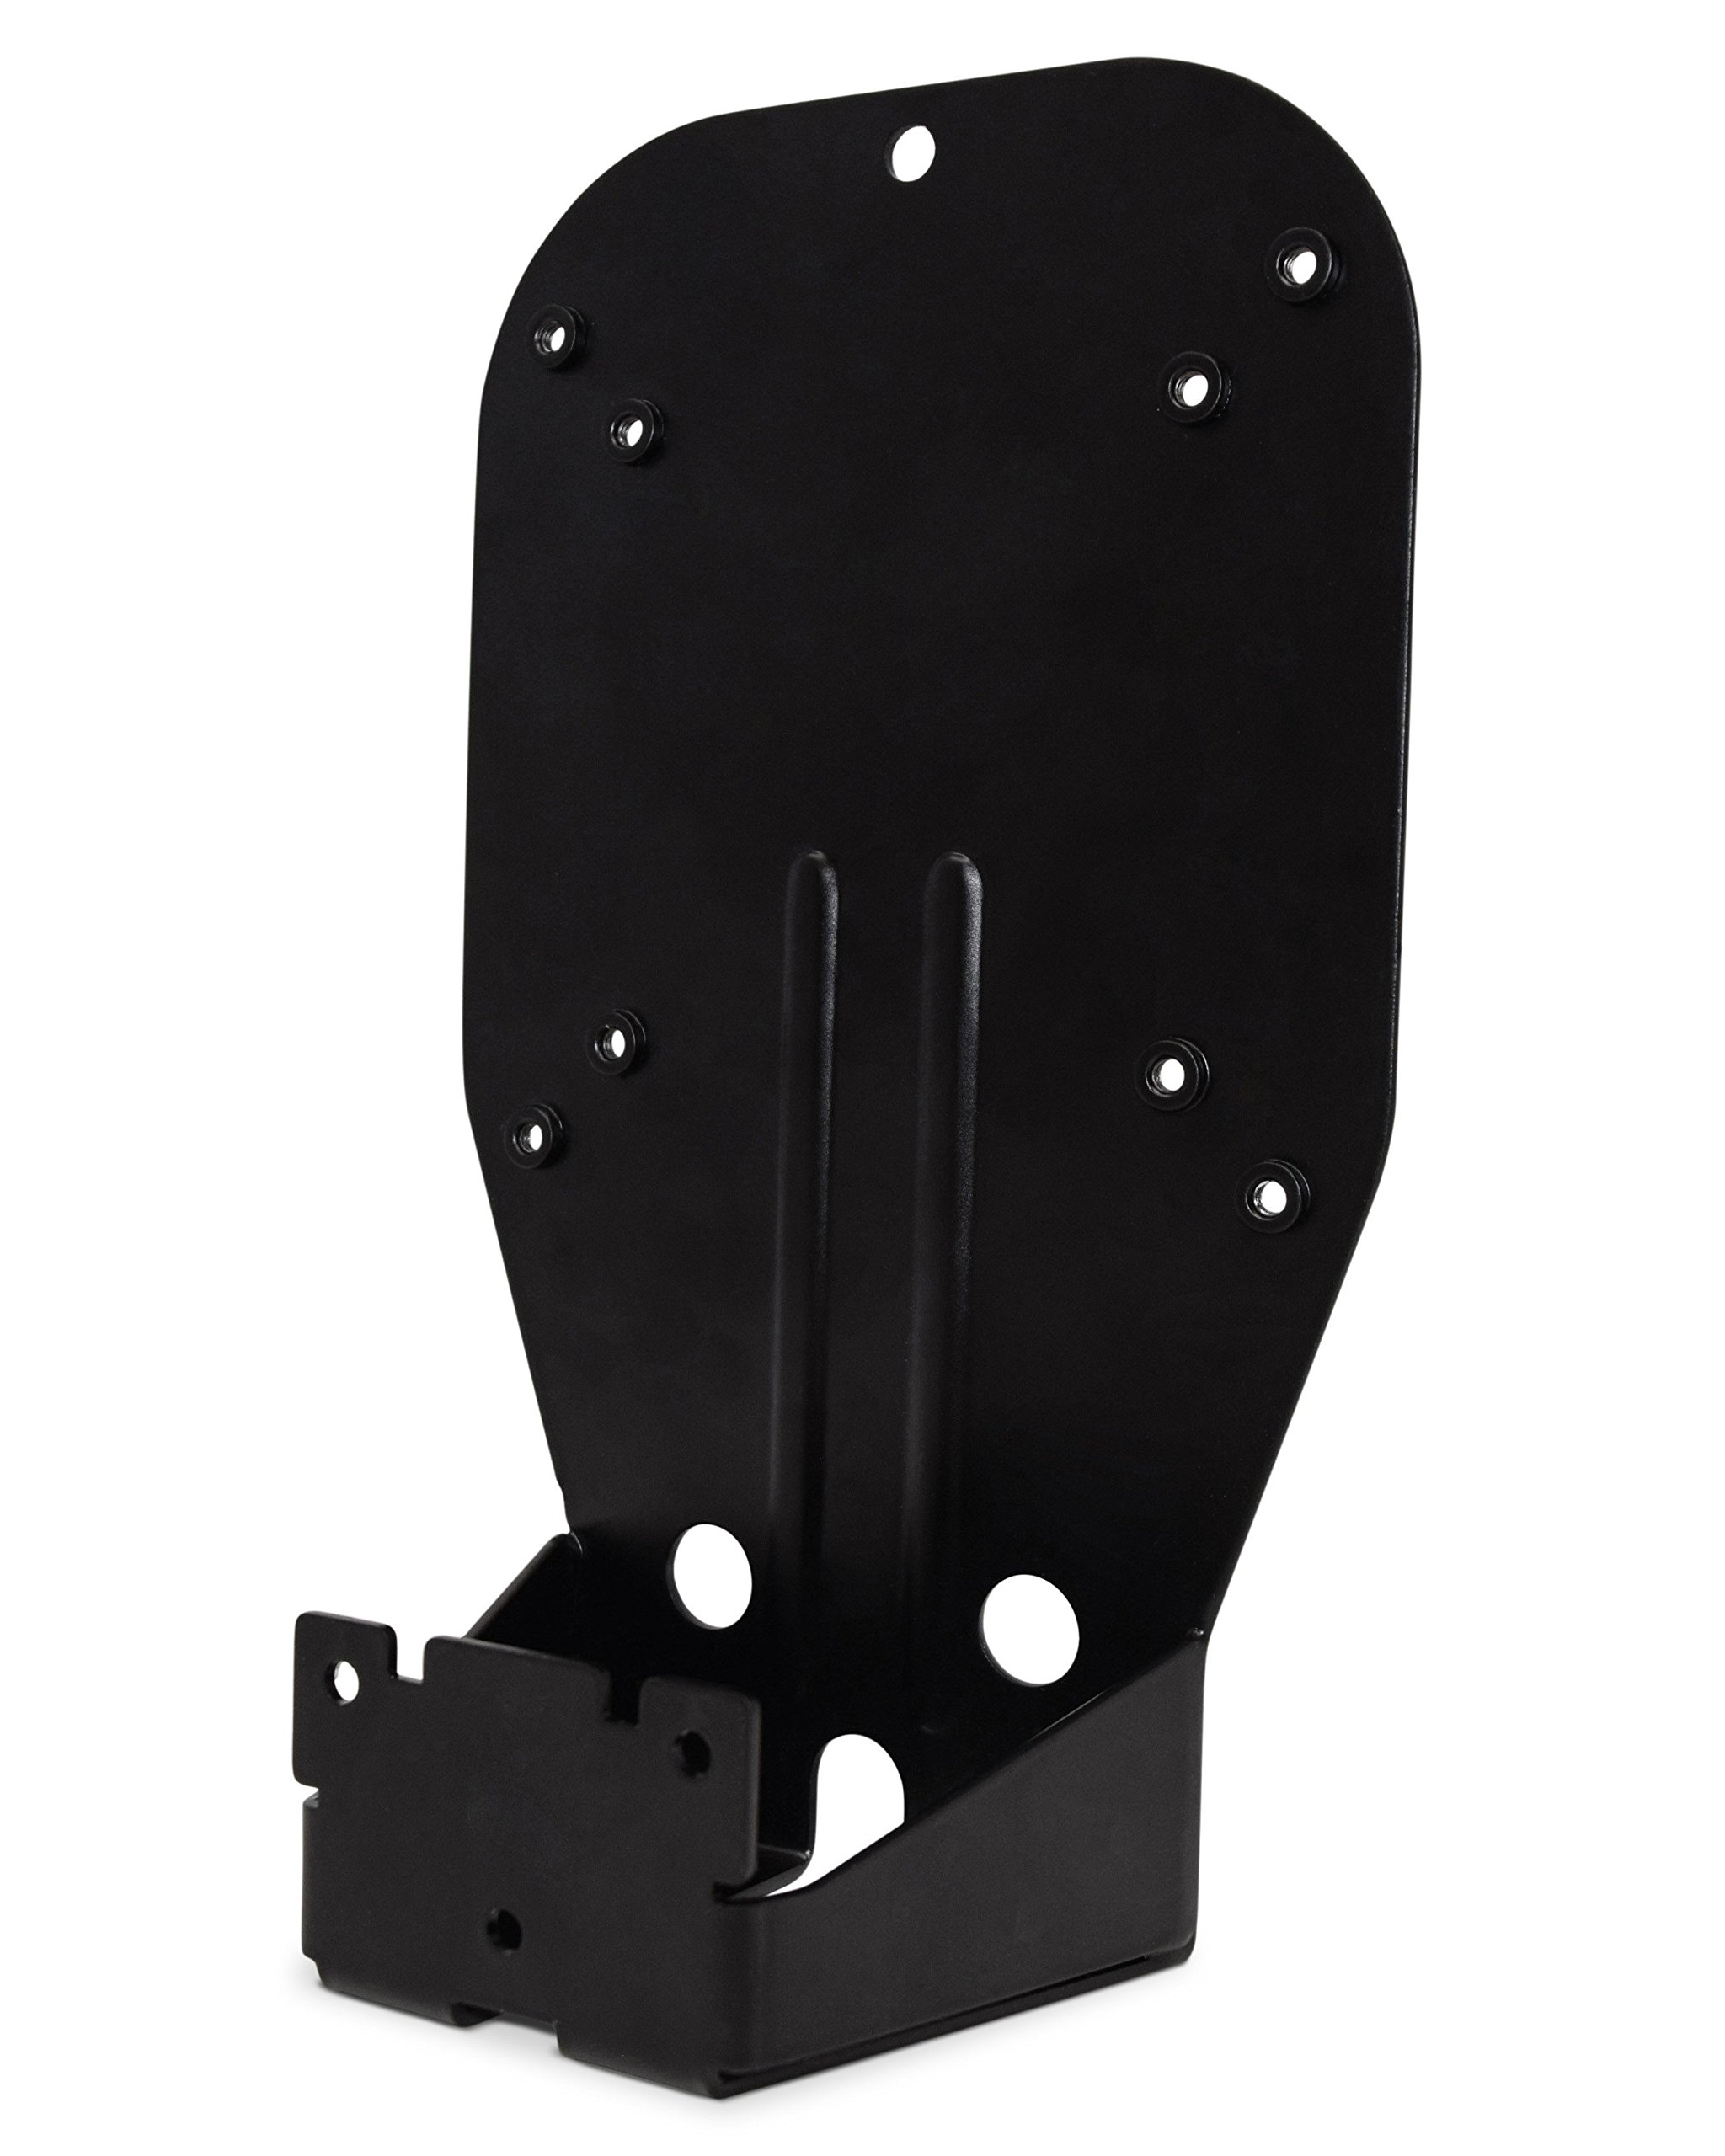 VESA Mount Adapter for Dell ST2410, ST2310 (Does Not Fit ST2310f), ST2210, ST2010 Monitors - by HumanCentric